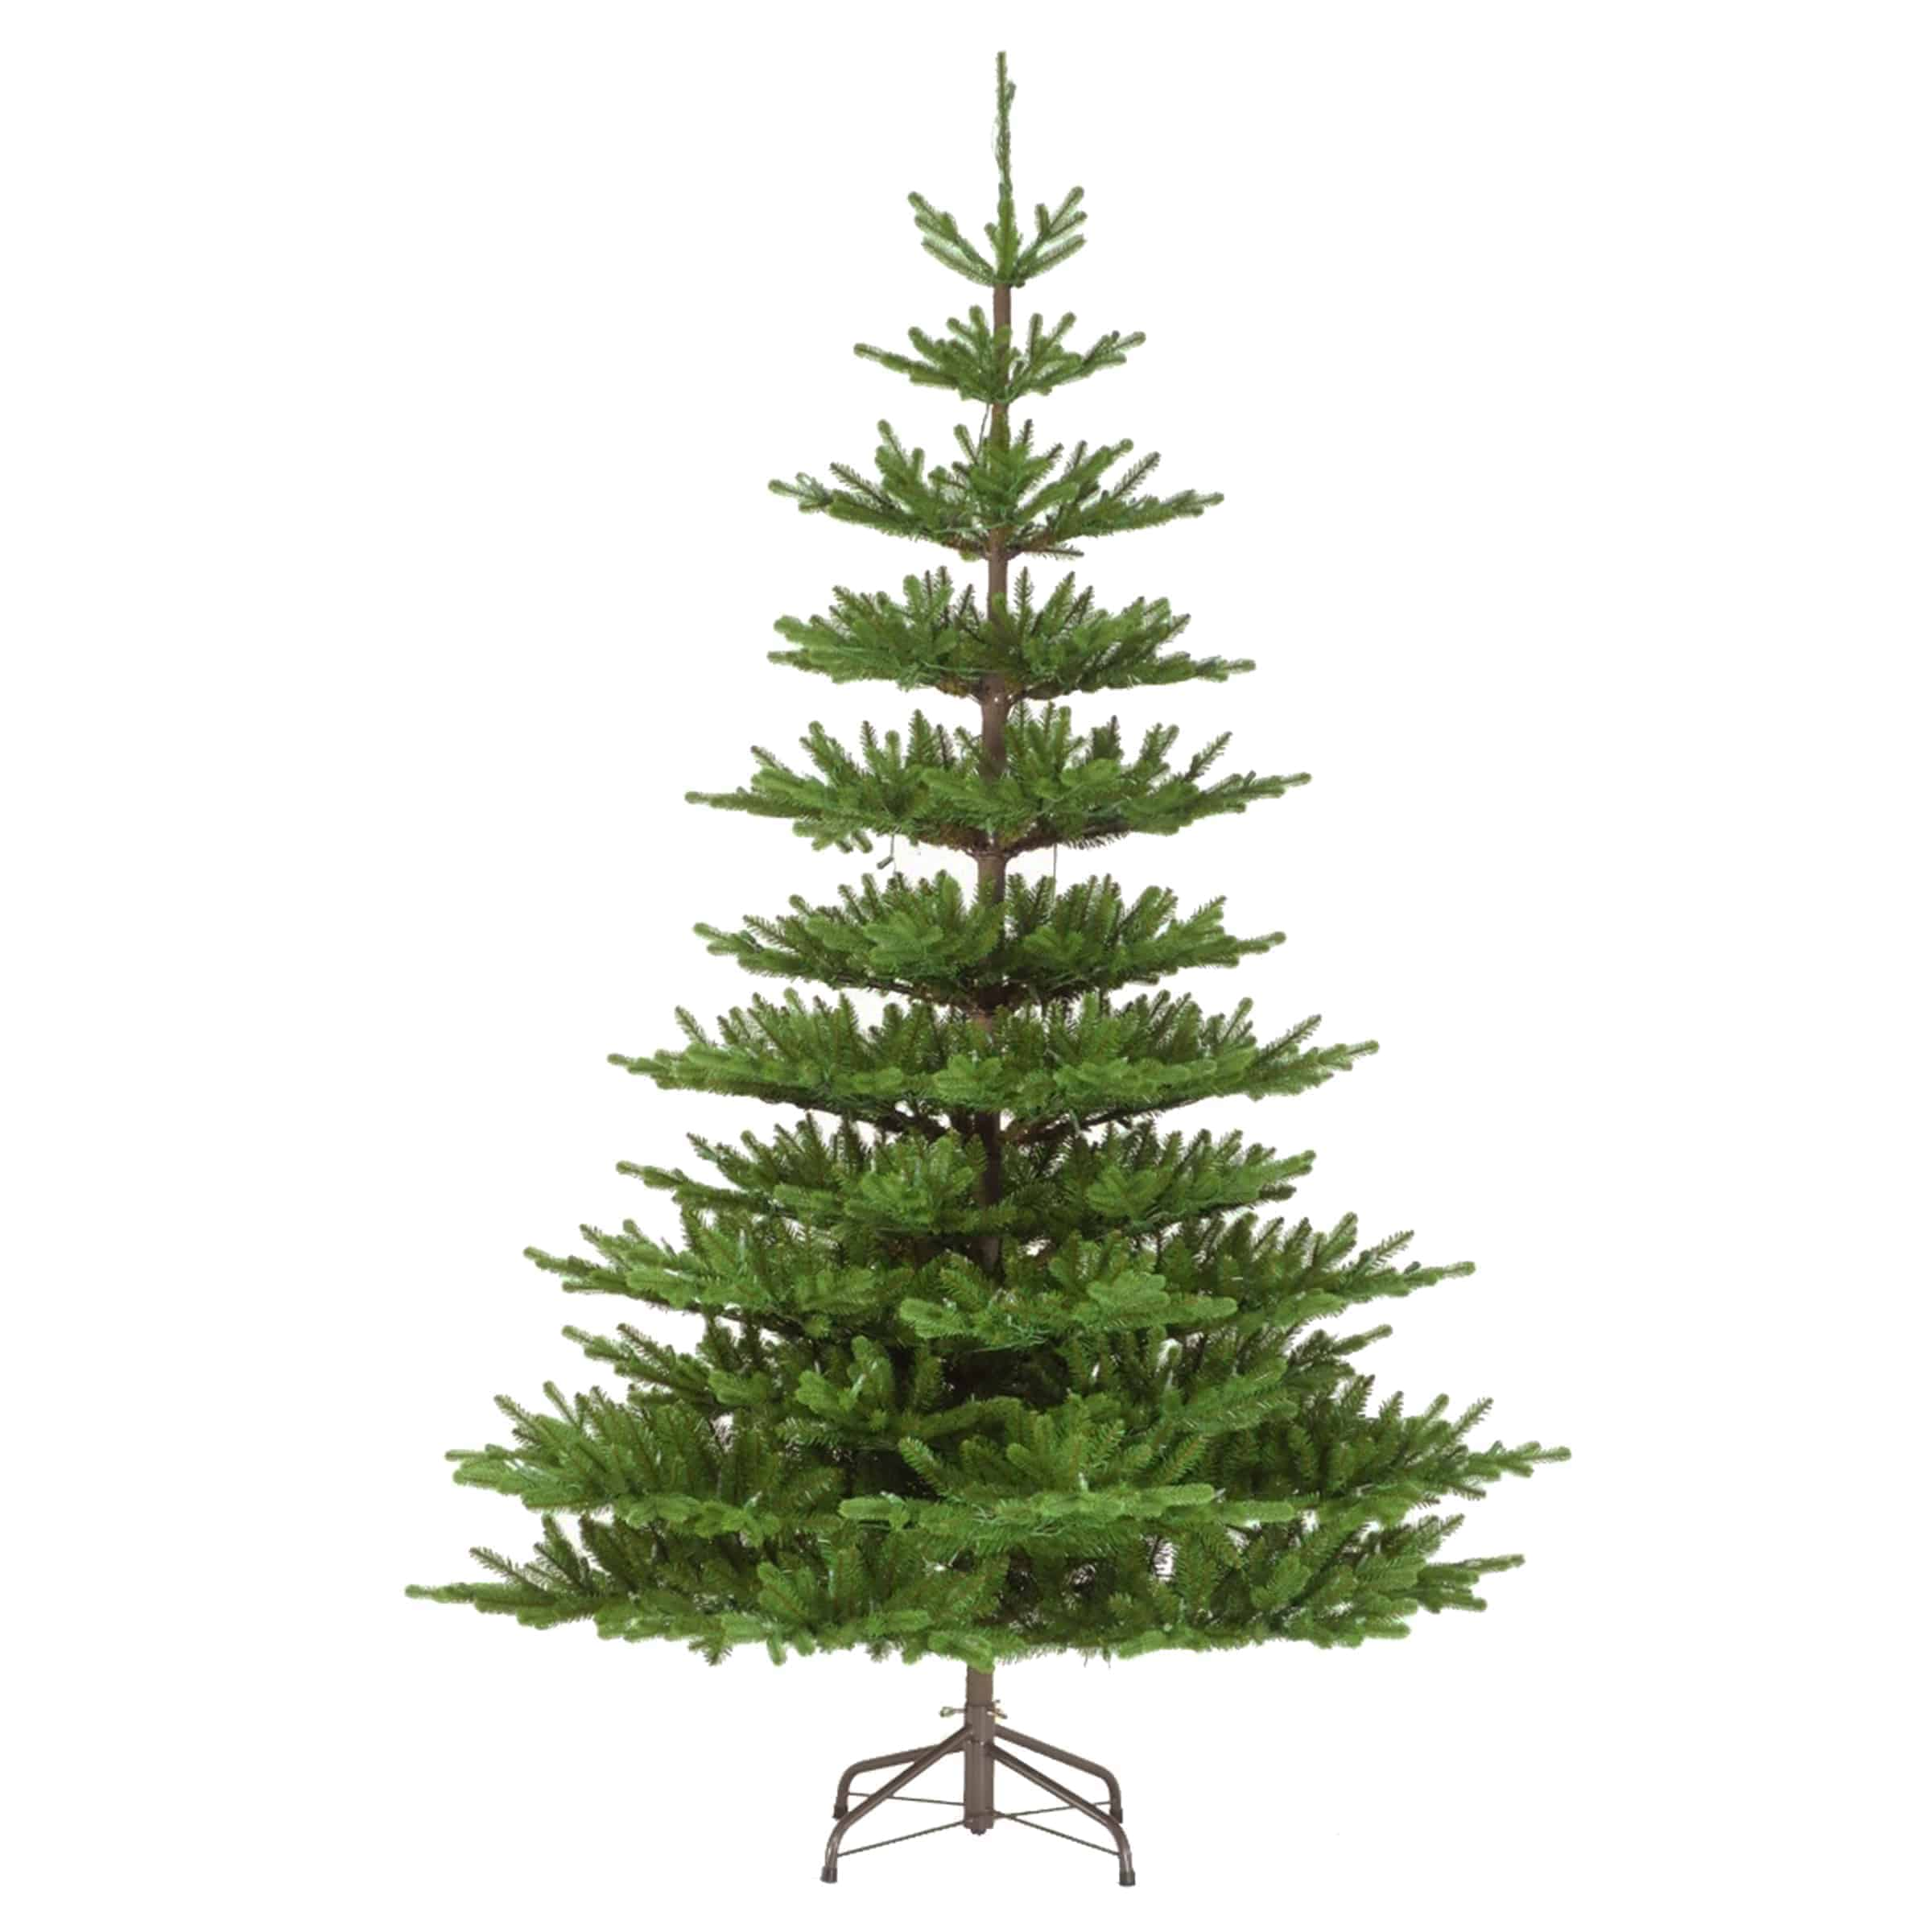 Artifical Christmas Trees.7 5ft Imperial Spruce Hinged Artificial Christmas Tree Online Only